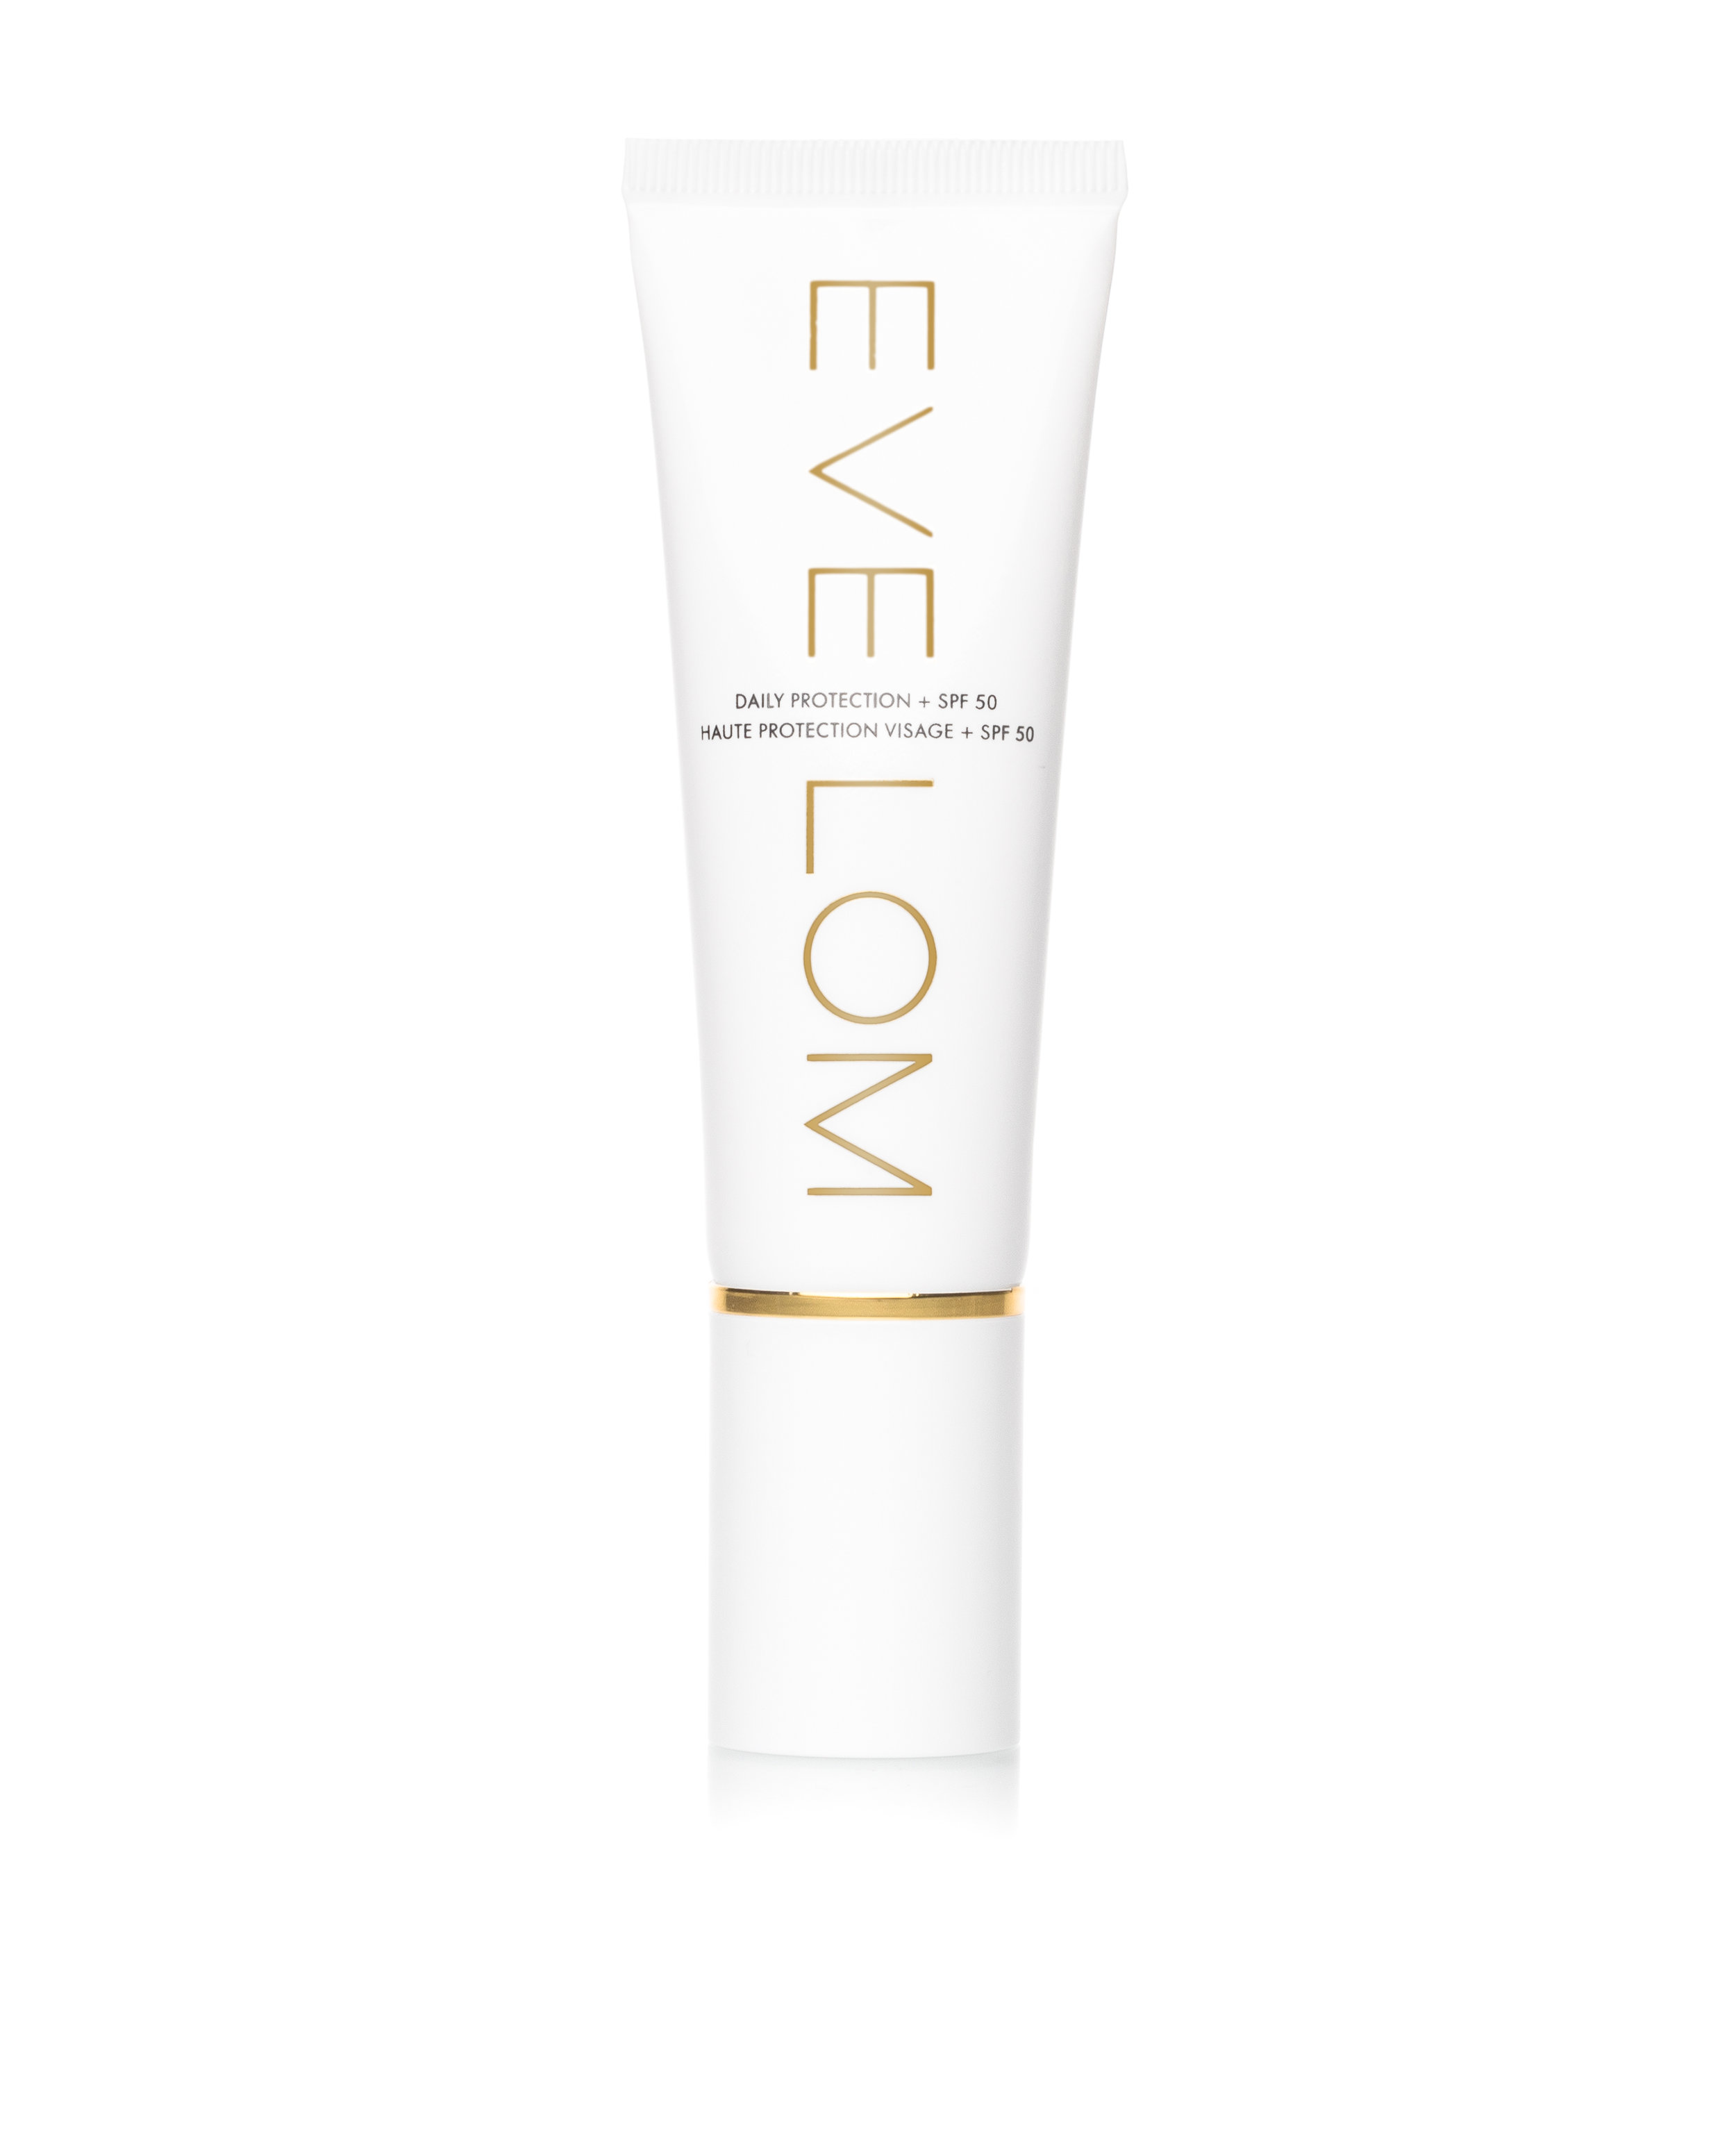 EVE LOM Daily Protection + SPF50, AVAILABLE AT NET-A-PORTER